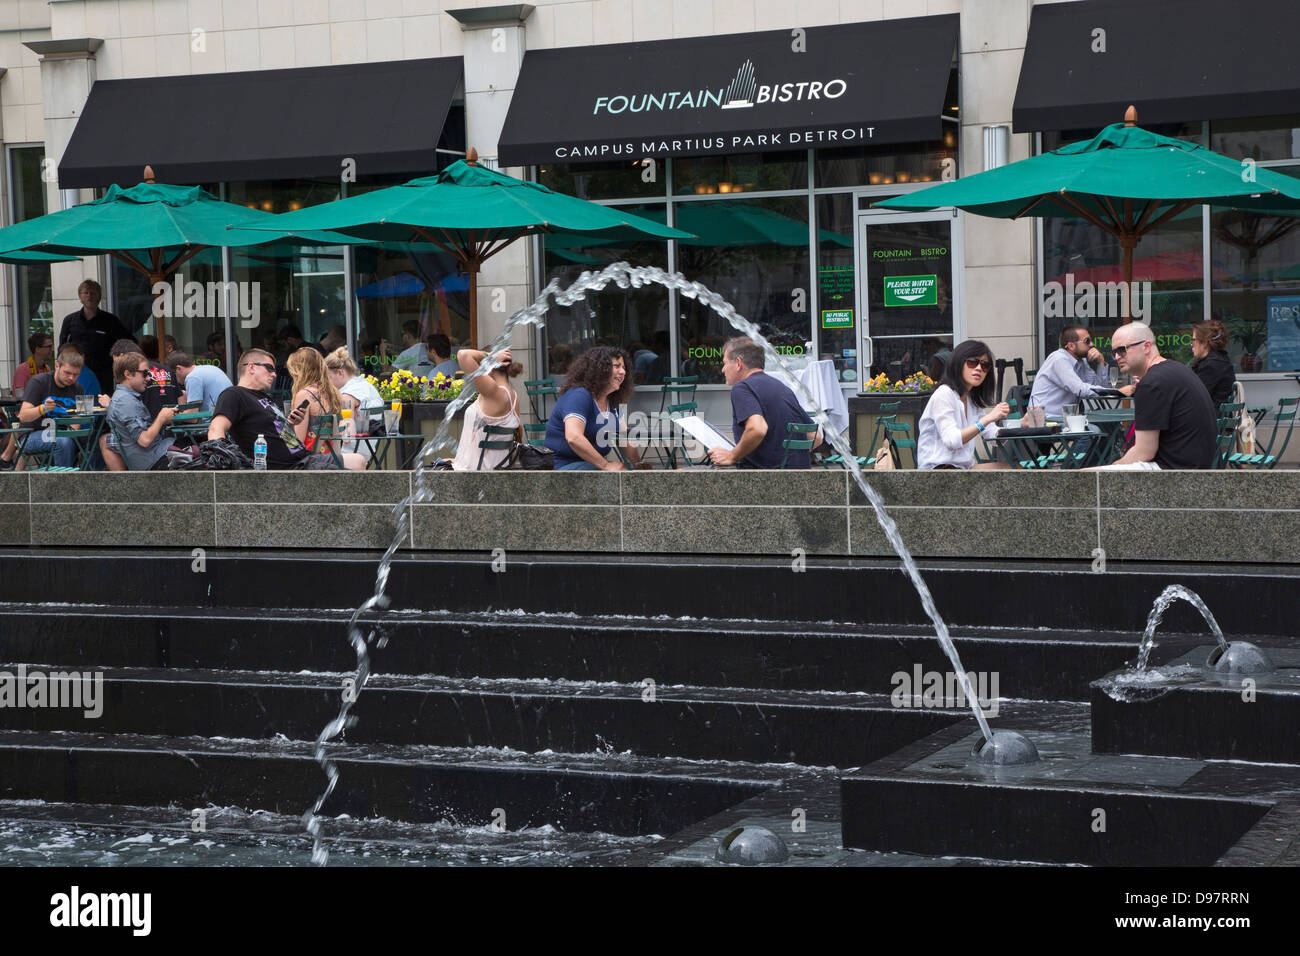 Detroit, Michigan - The Fountain Bistro restaurant in Campus Martius Park in the center of Detroit's financial - Stock Image